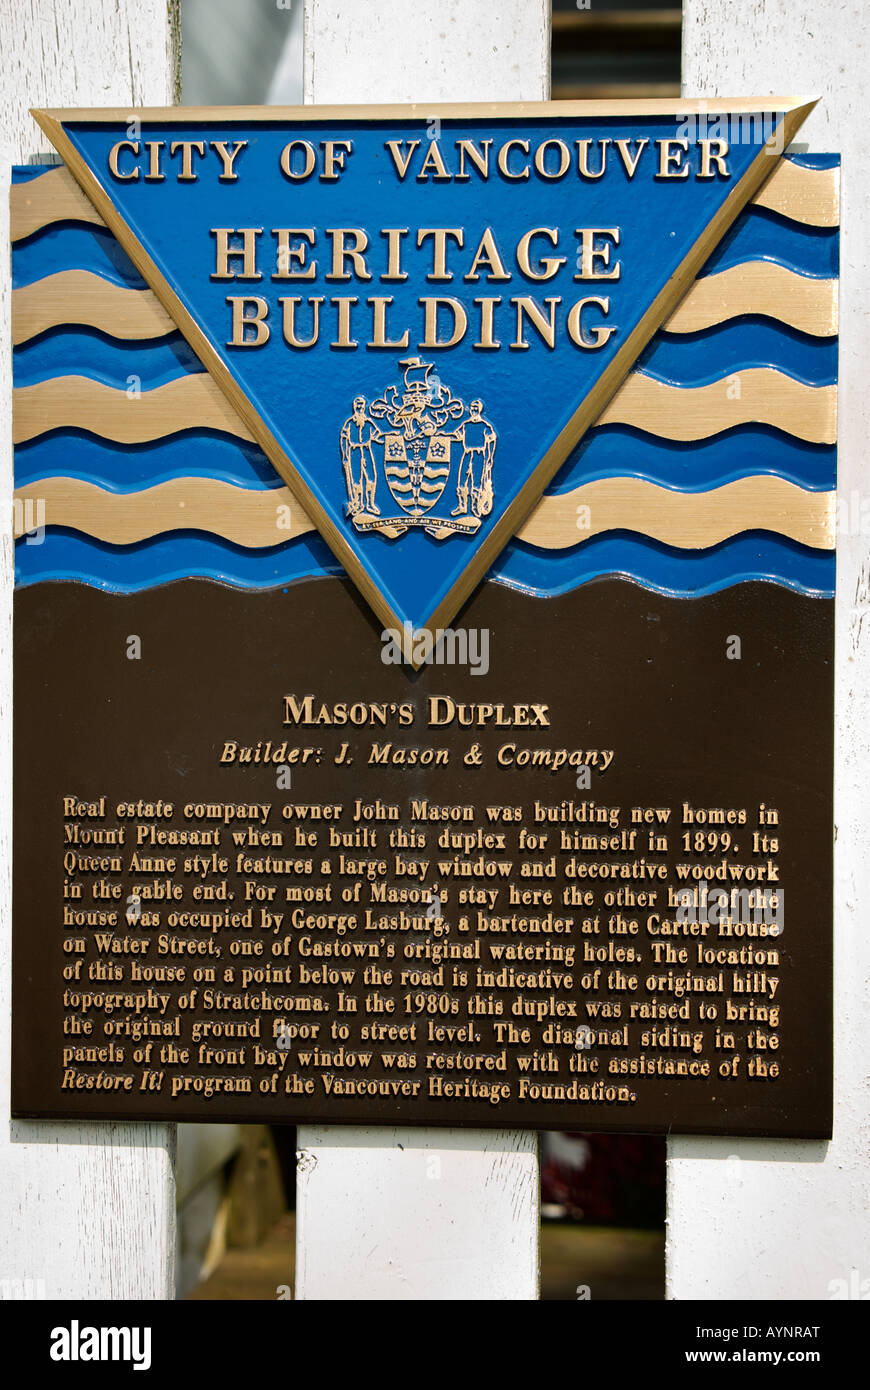 City of Vancouver Heritage Building designation plaque. - Stock Image